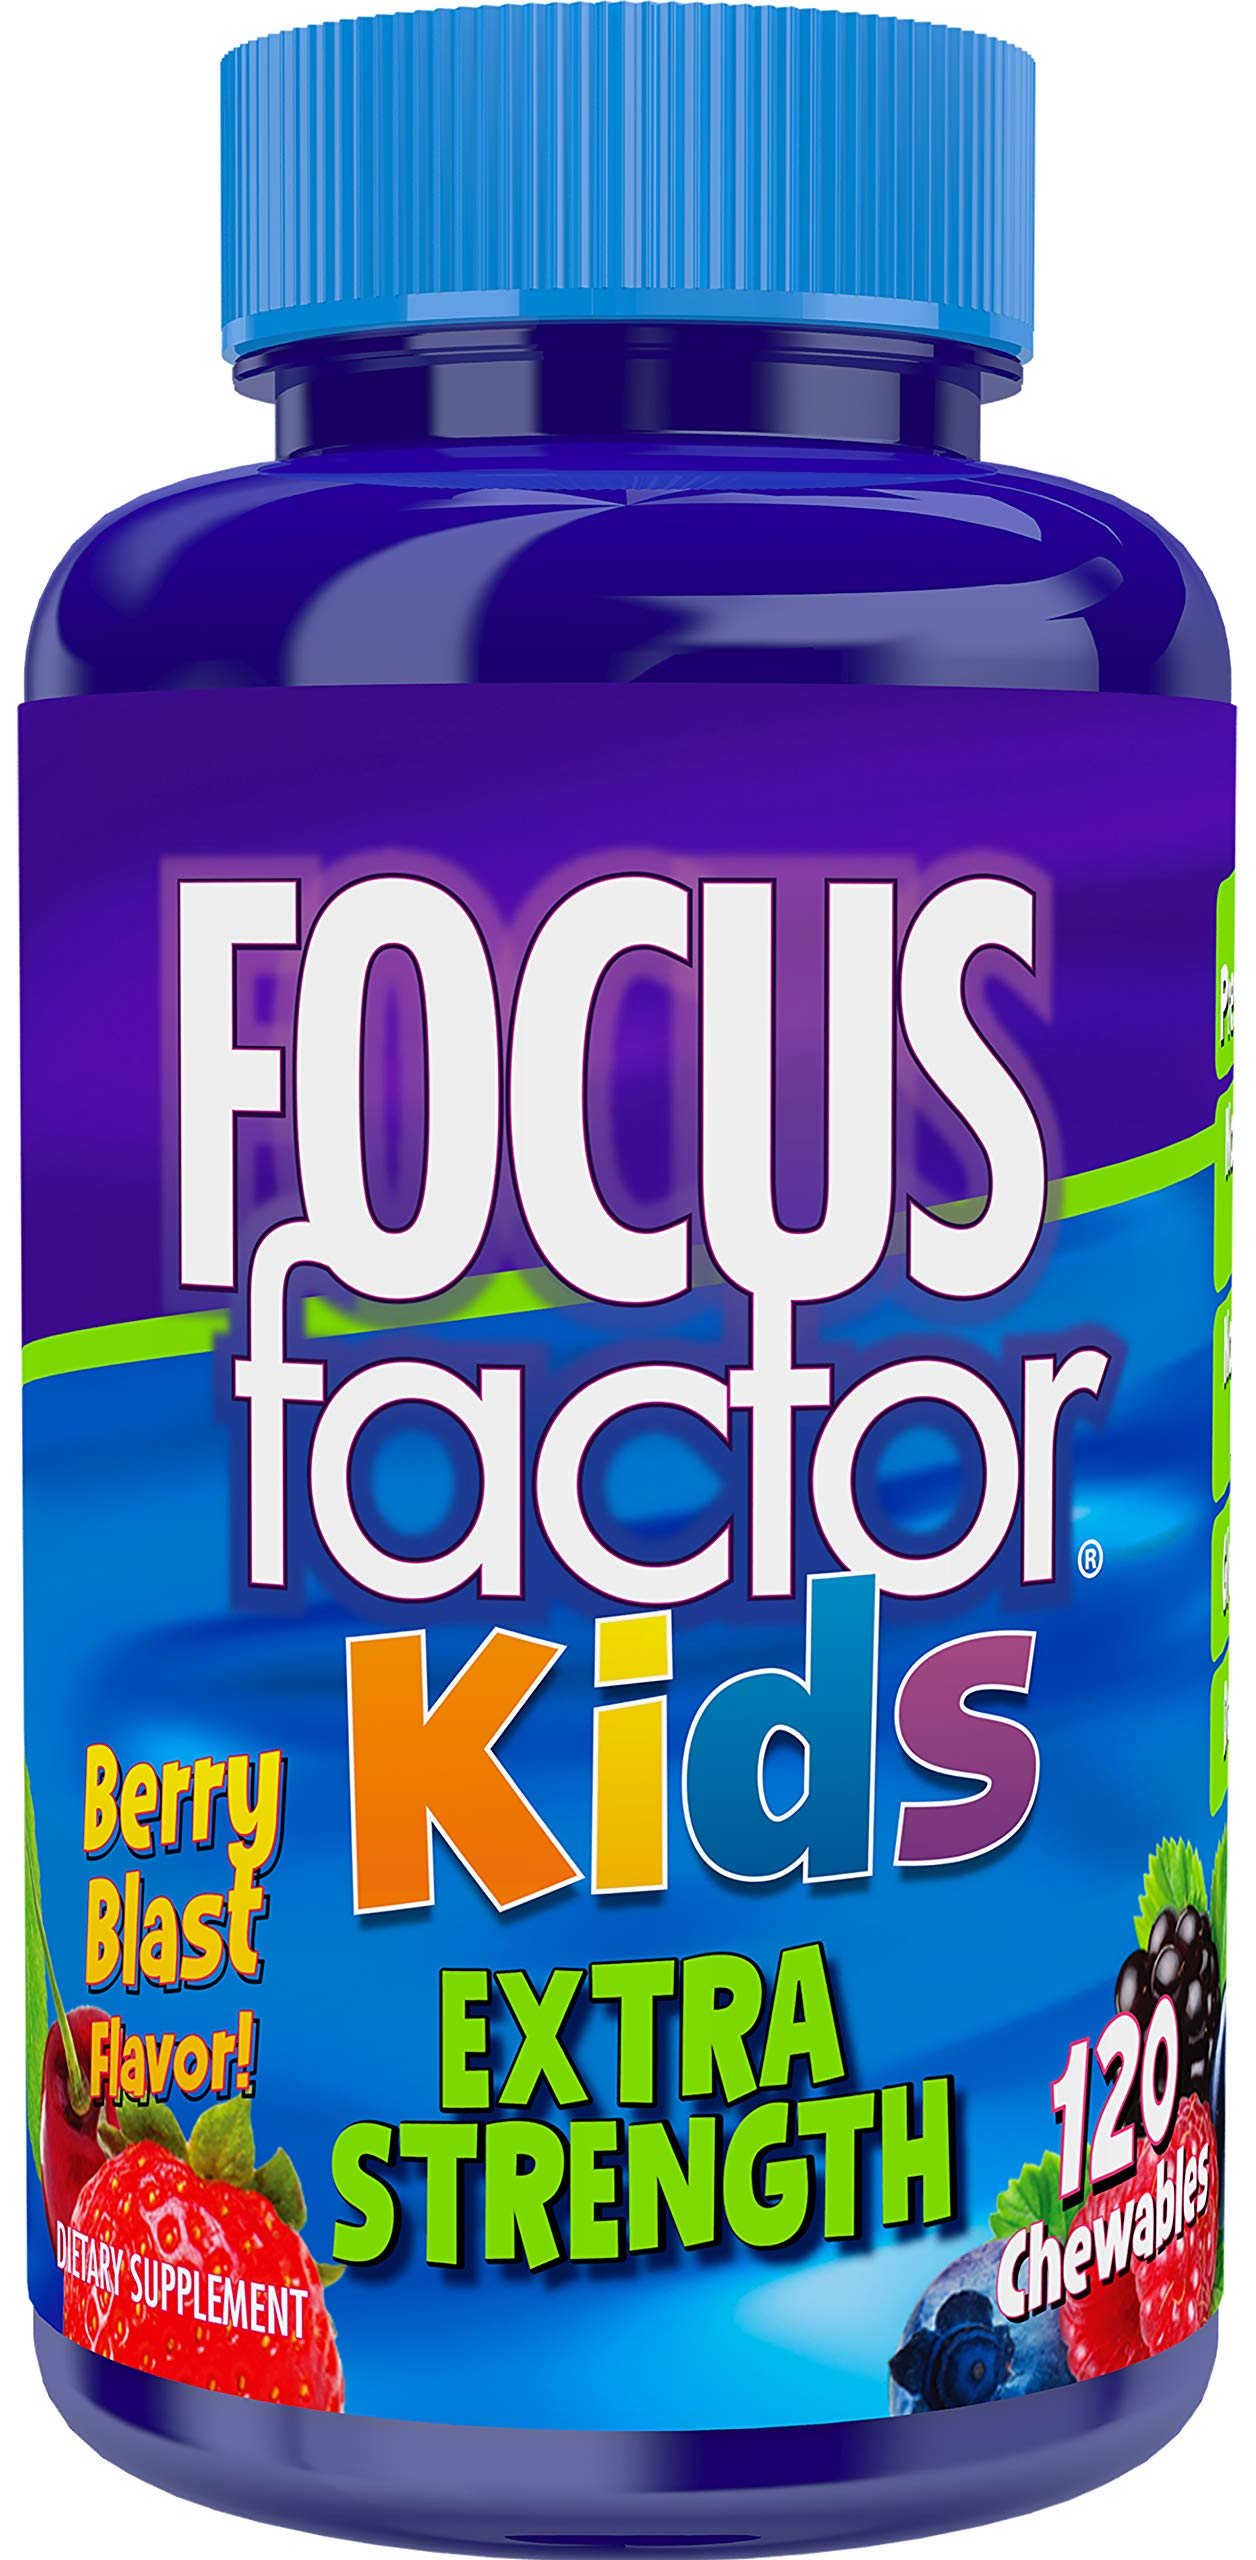 Focus Factor Kids Extra Strength Complete Vitamins: Multivitamin & Neuro Nutrients (Brain Function), Vitamin B12, C, D3, 120 Count, 60 Day Supply by Focus Factor